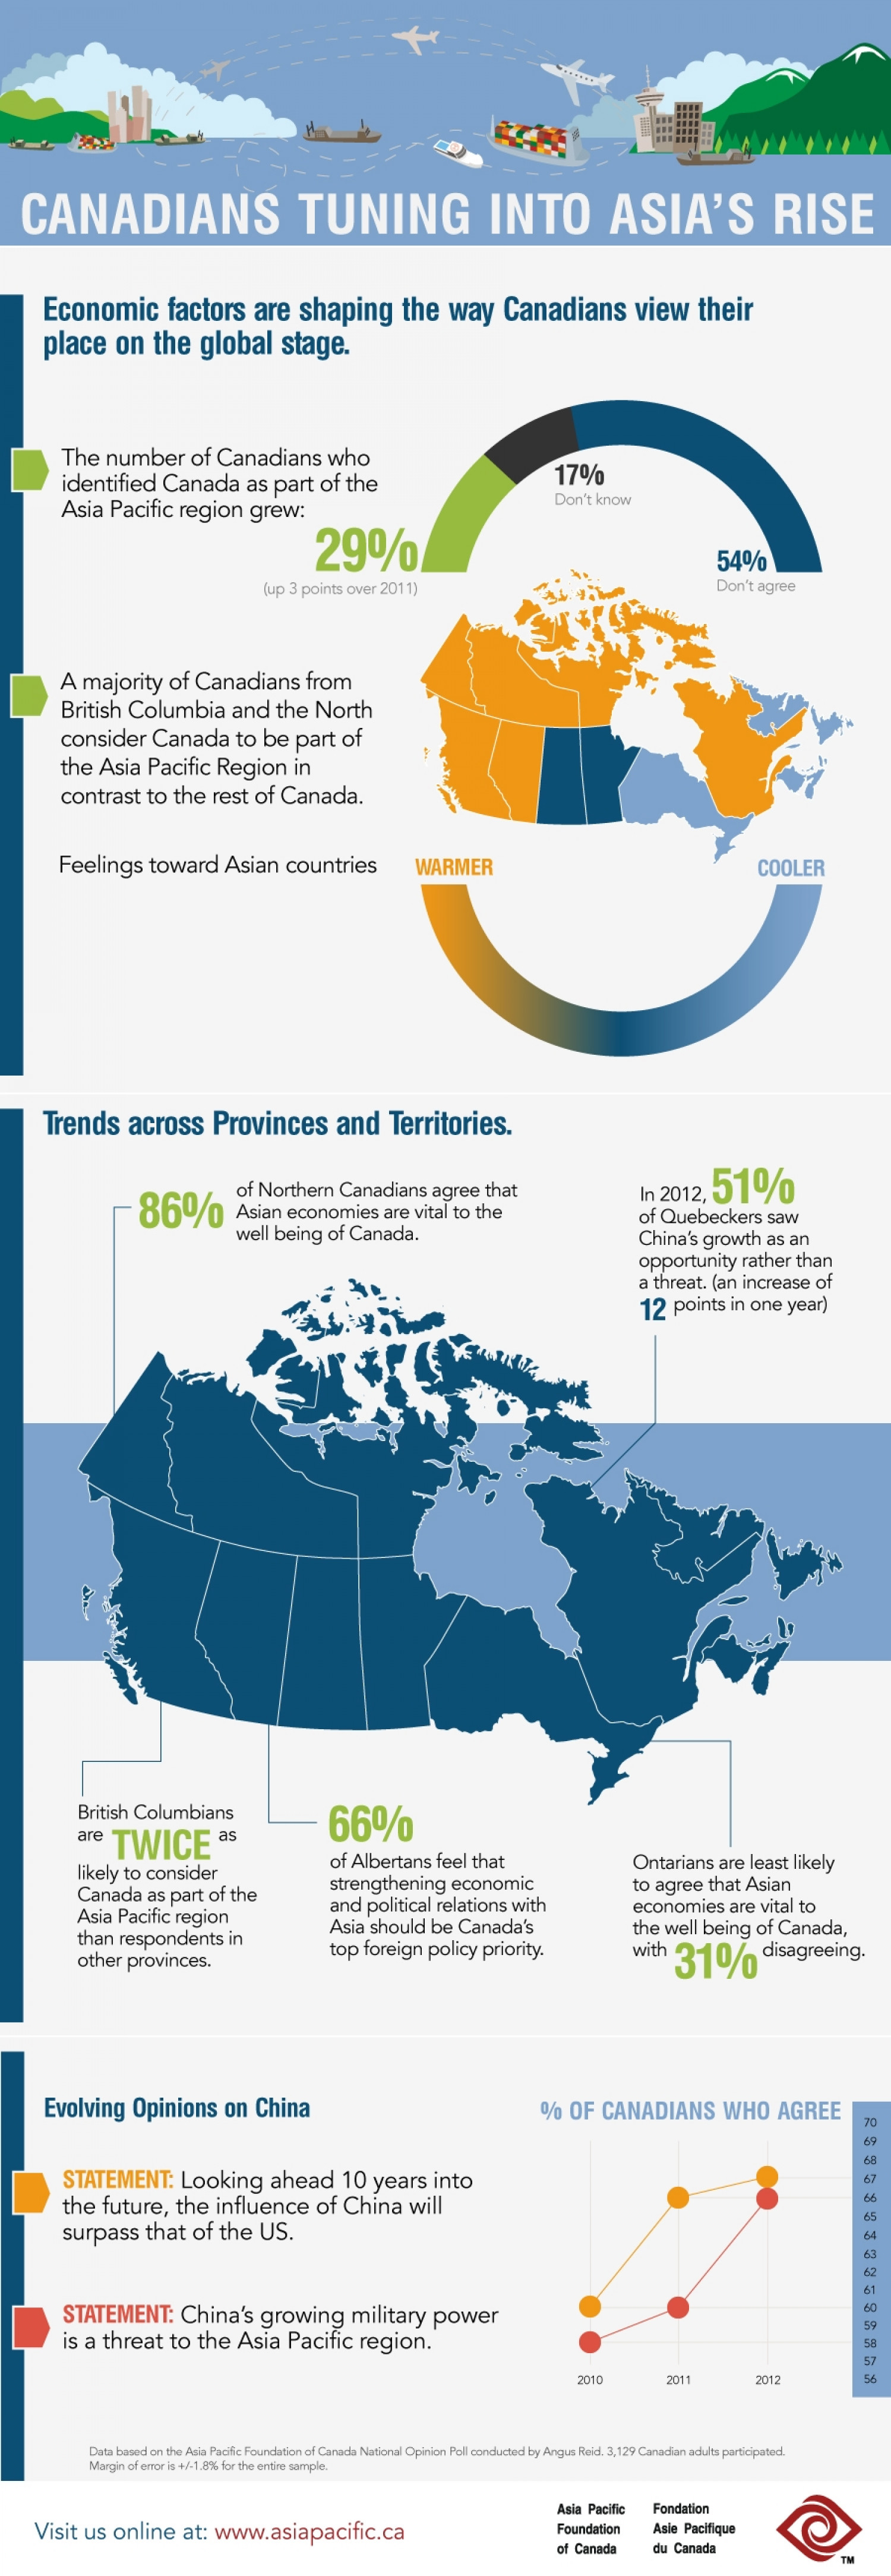 Canadians Are Tuning Into Asia's Rise Infographic